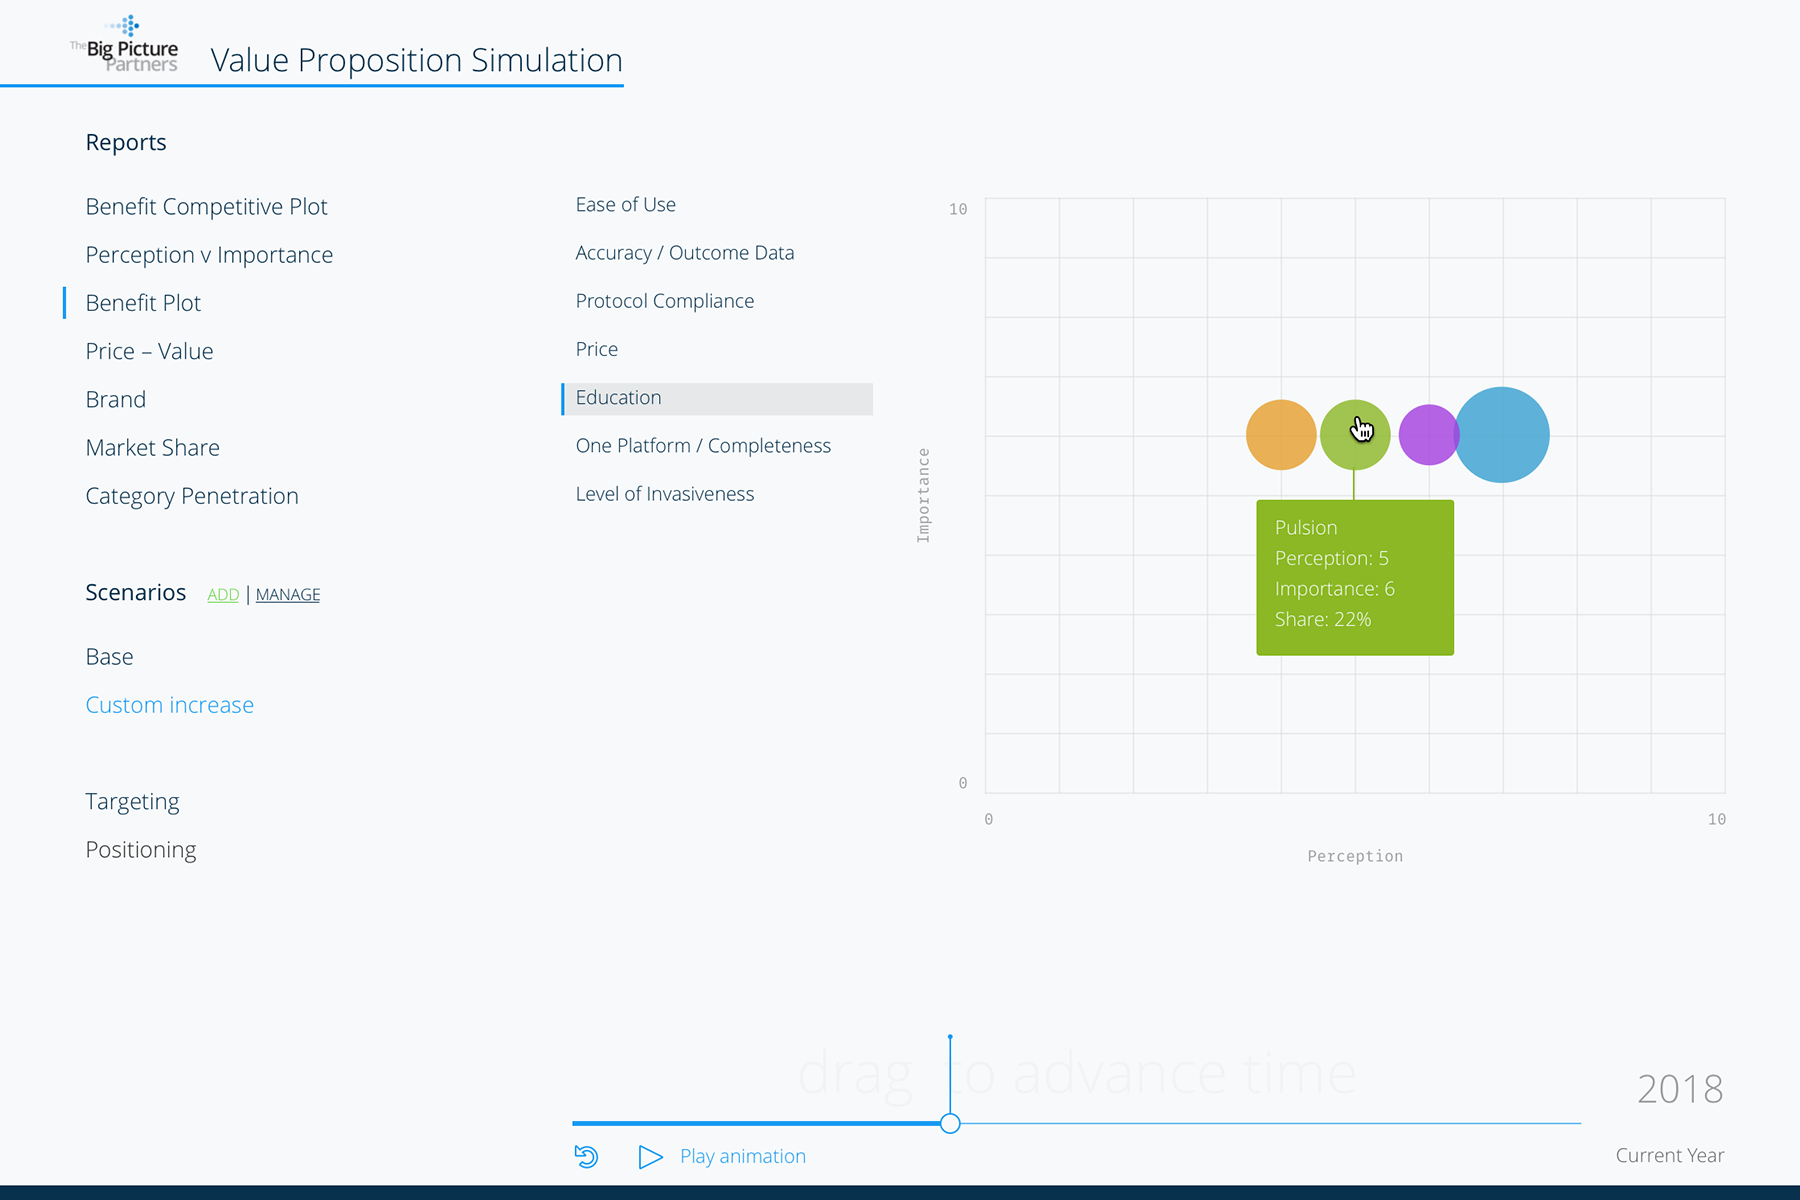 Value Proposition Simulation